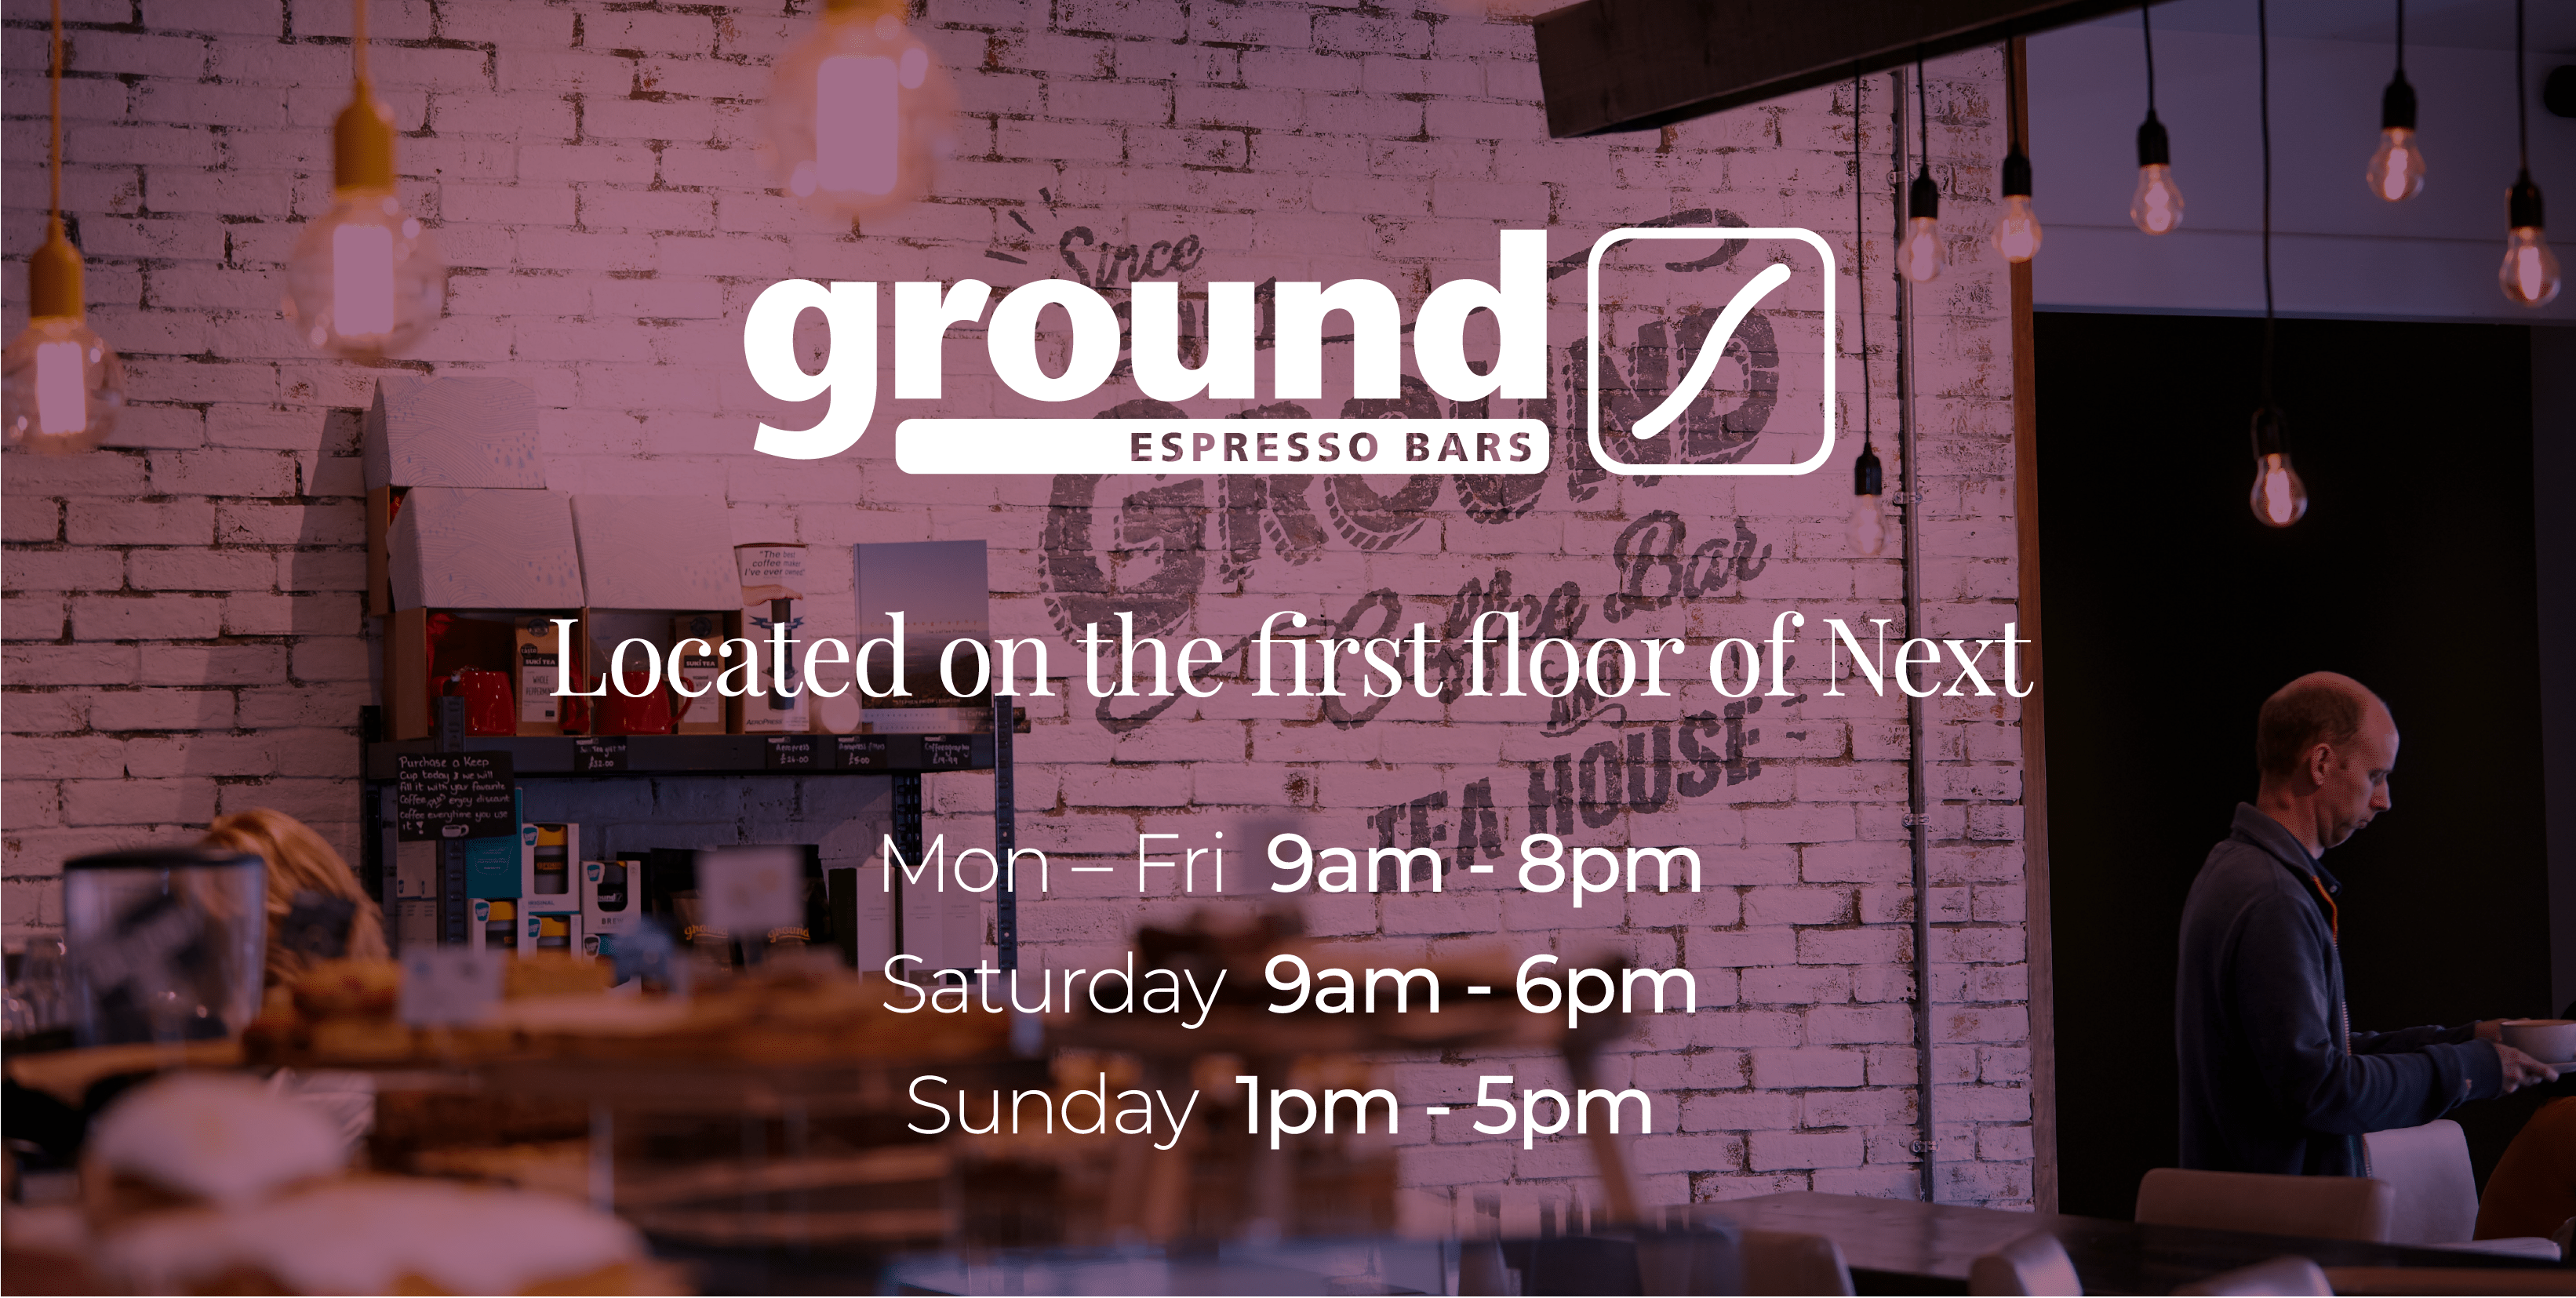 Ground Opening Hours